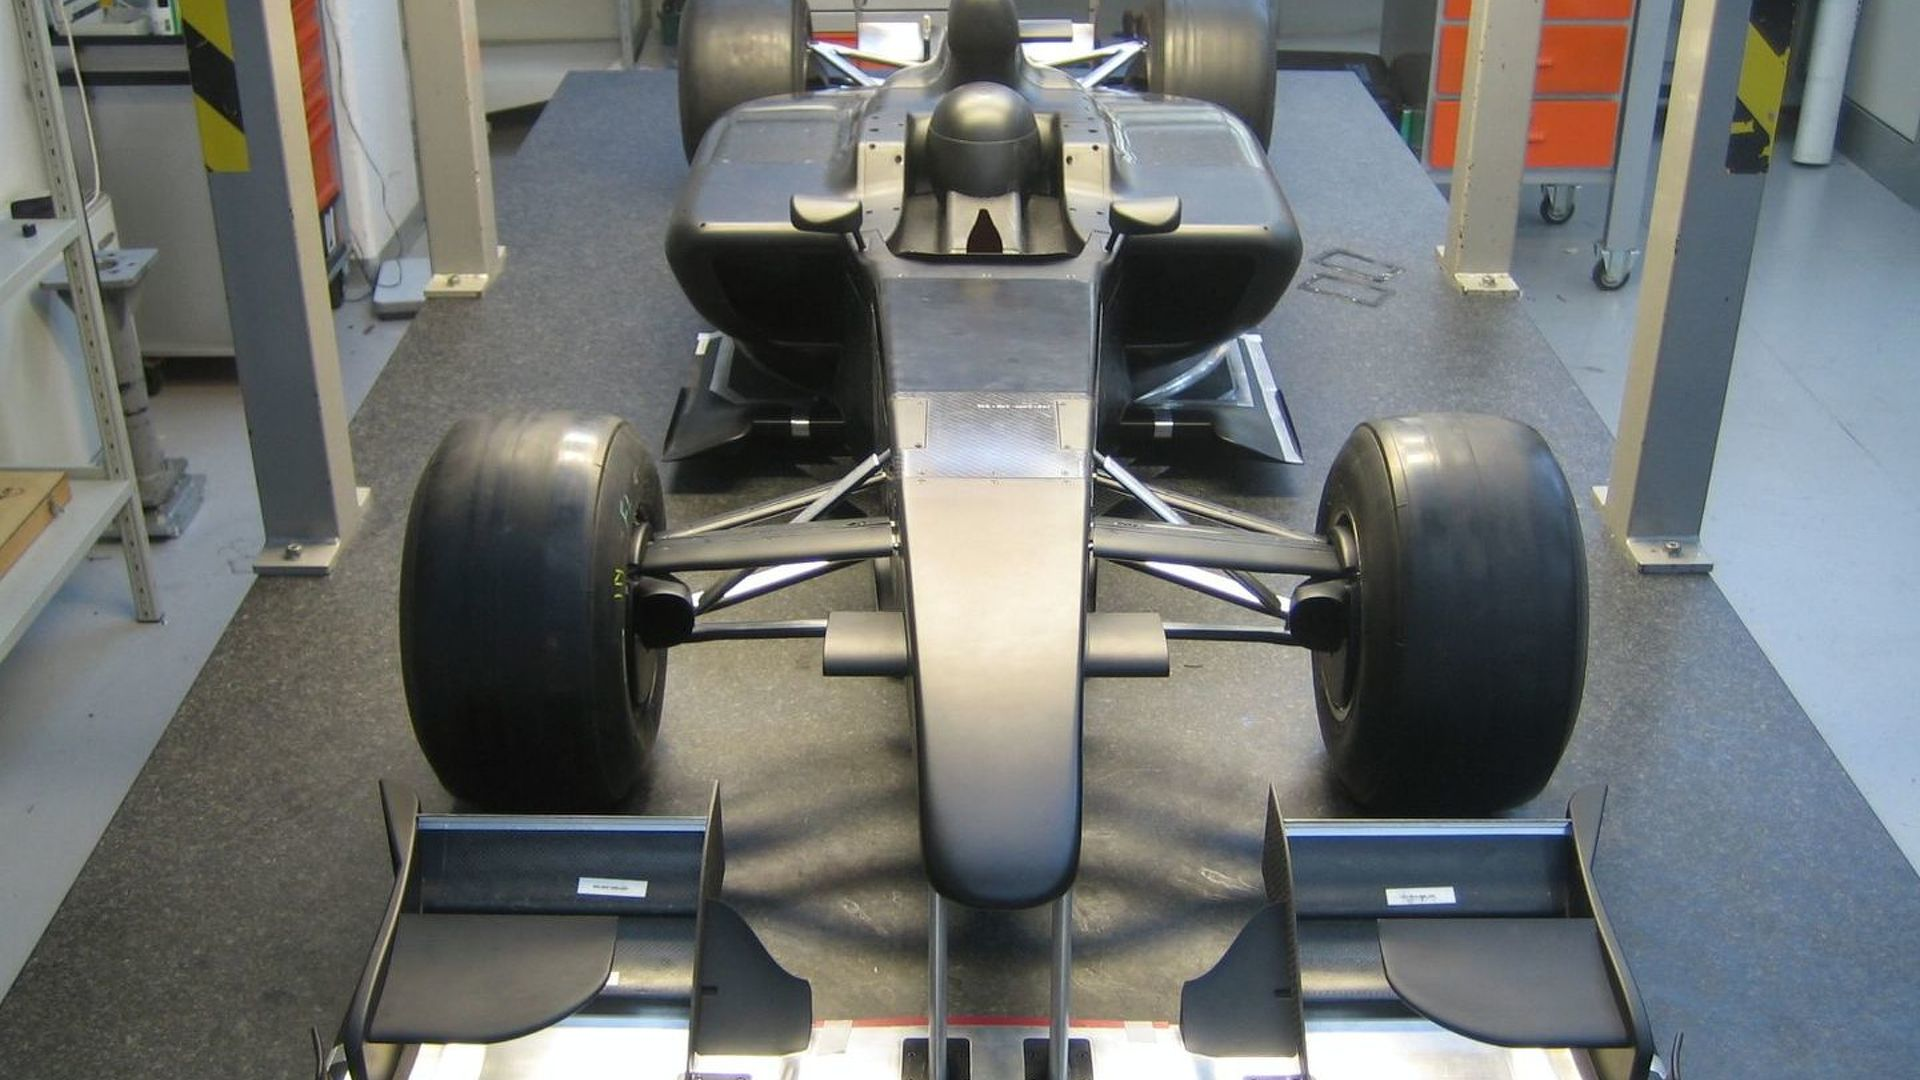 Lotus car to be launched in London - report